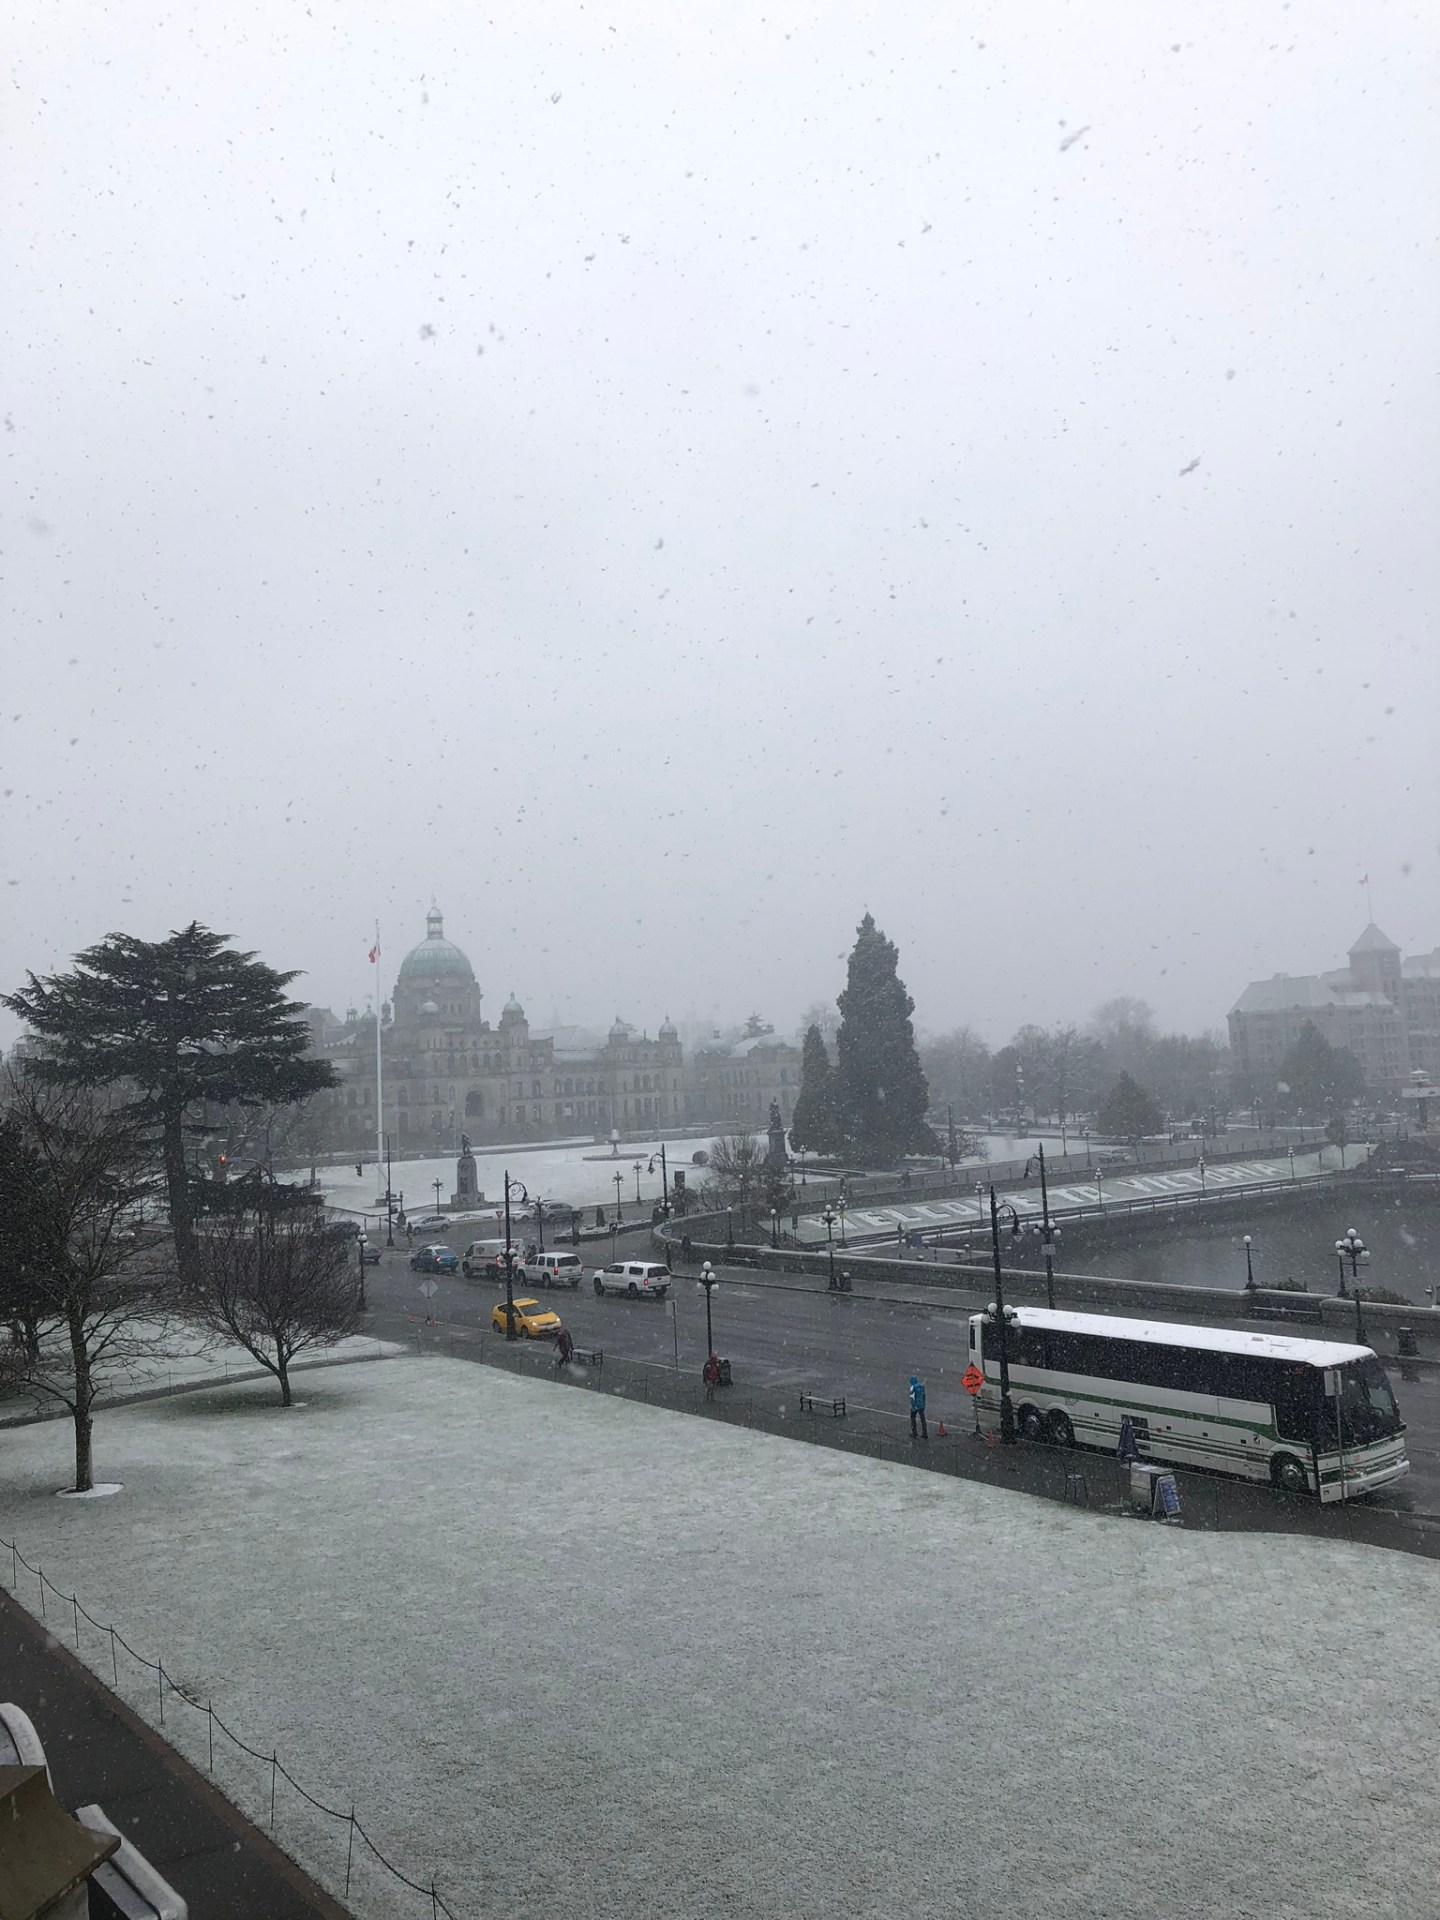 Snow falling over Victoria, British Columbia and the Parliament Building